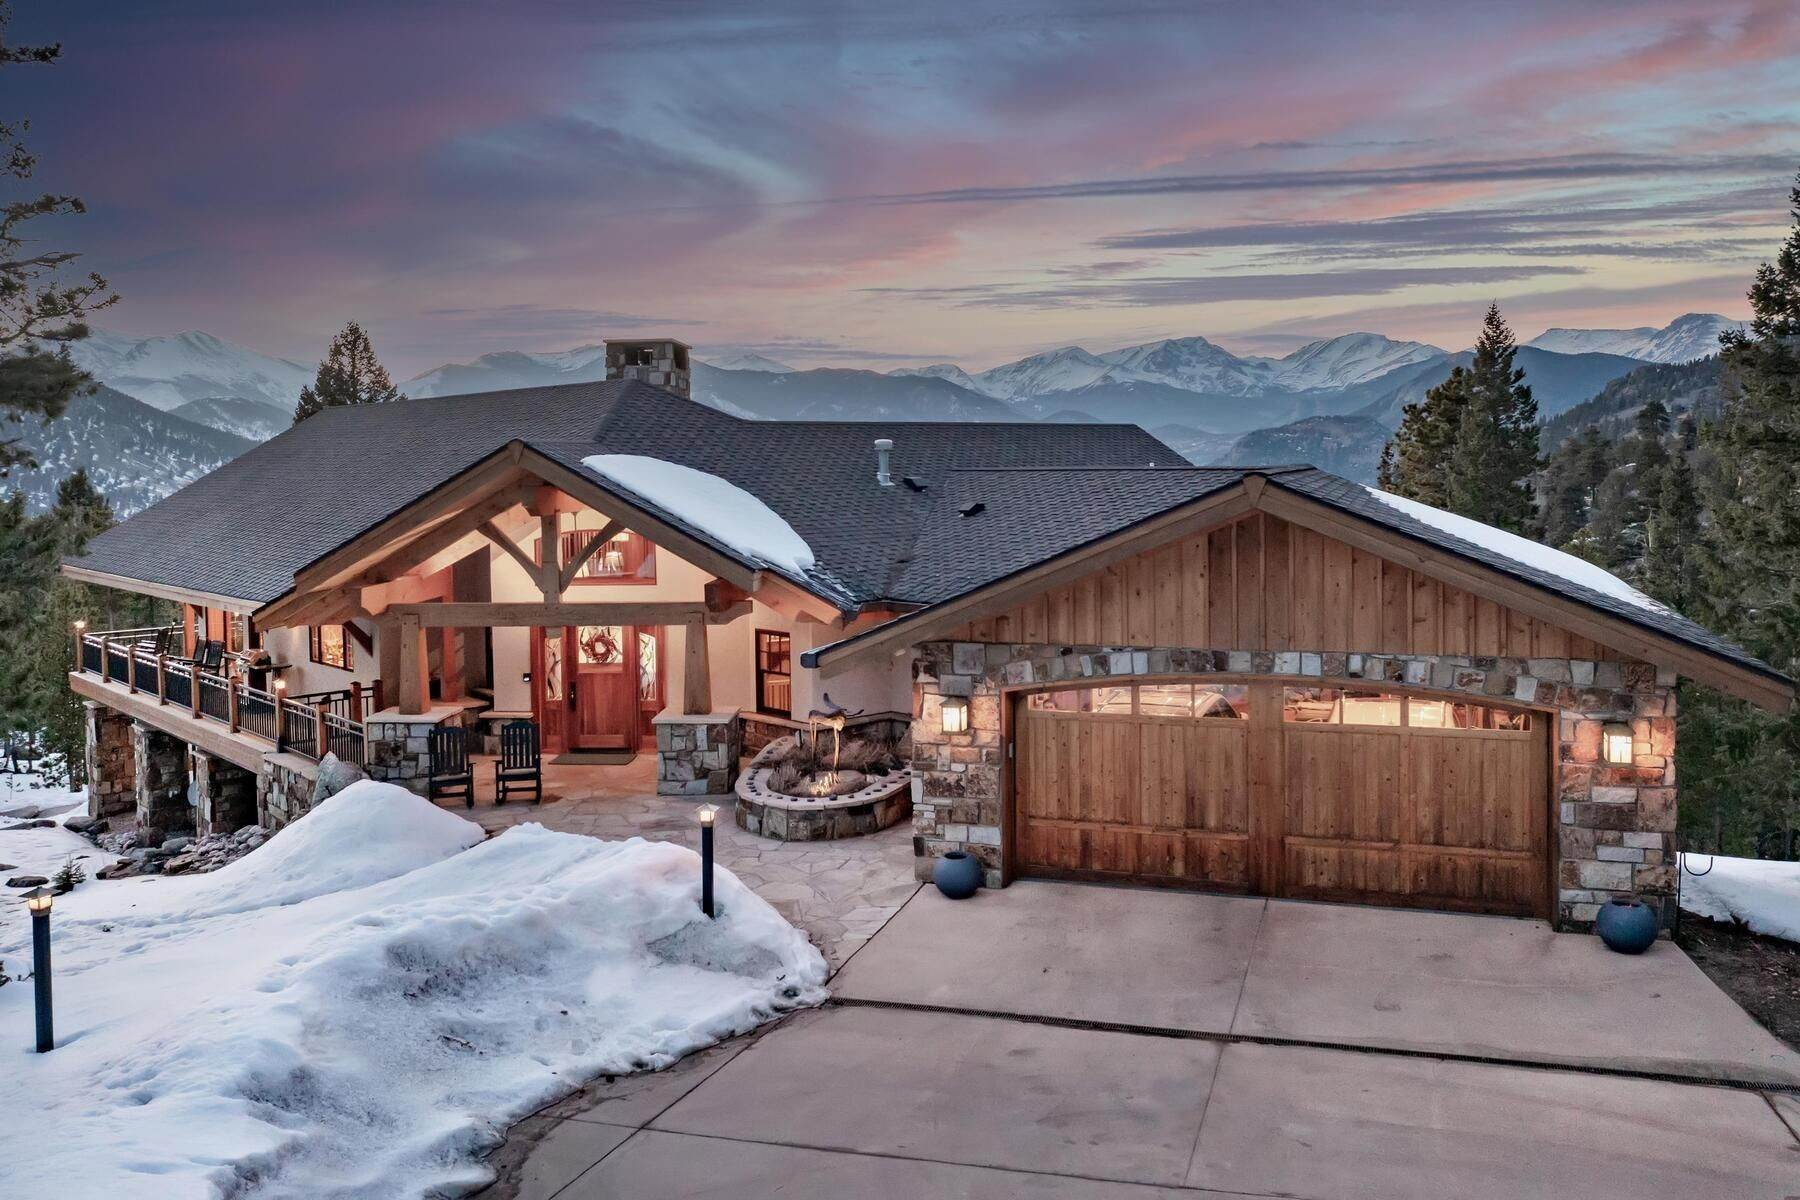 Single Family Homes for Active at 1415 Jungfrau Trail, Estes Park, CO, 80517 1415 Jungfrau Trail Estes Park, Colorado 80517 United States